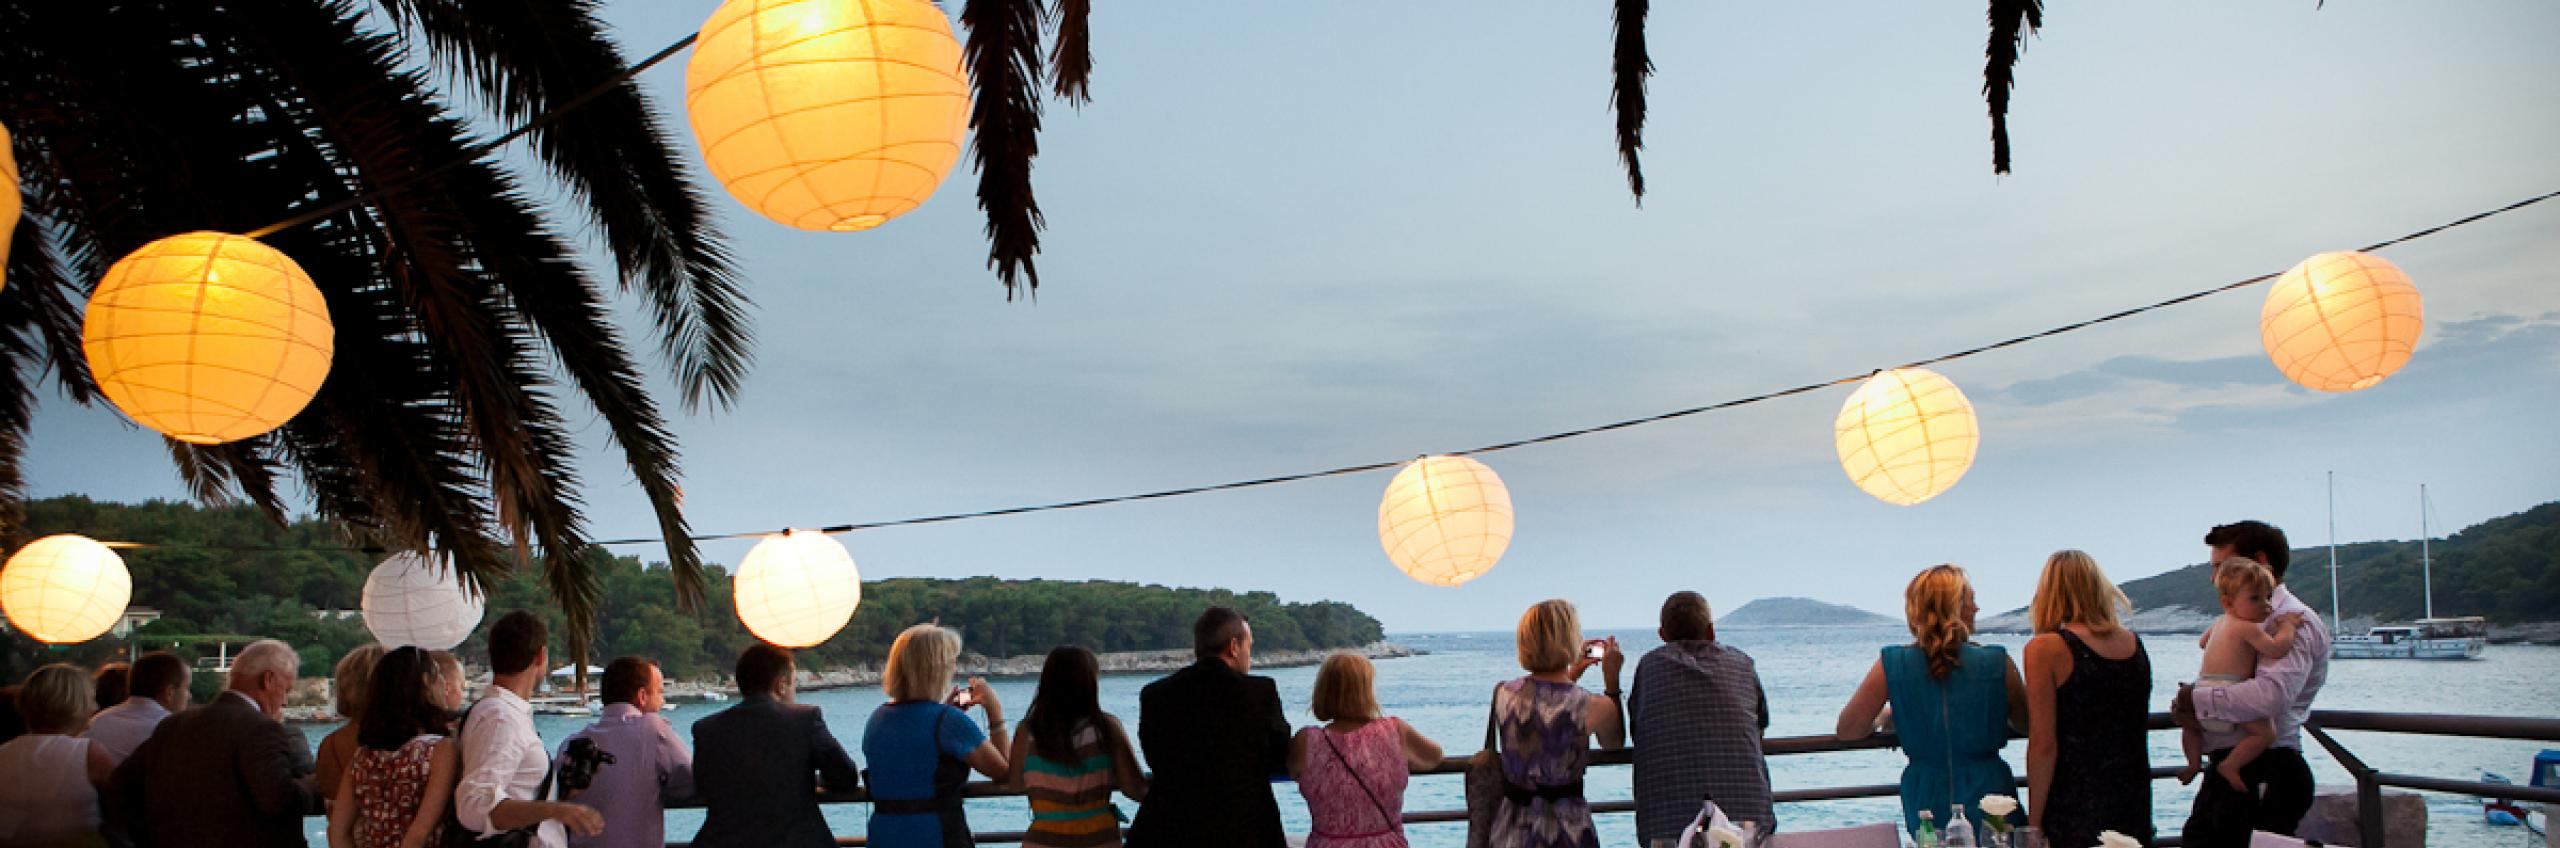 Summer wedding at Bonj les bains pontoon